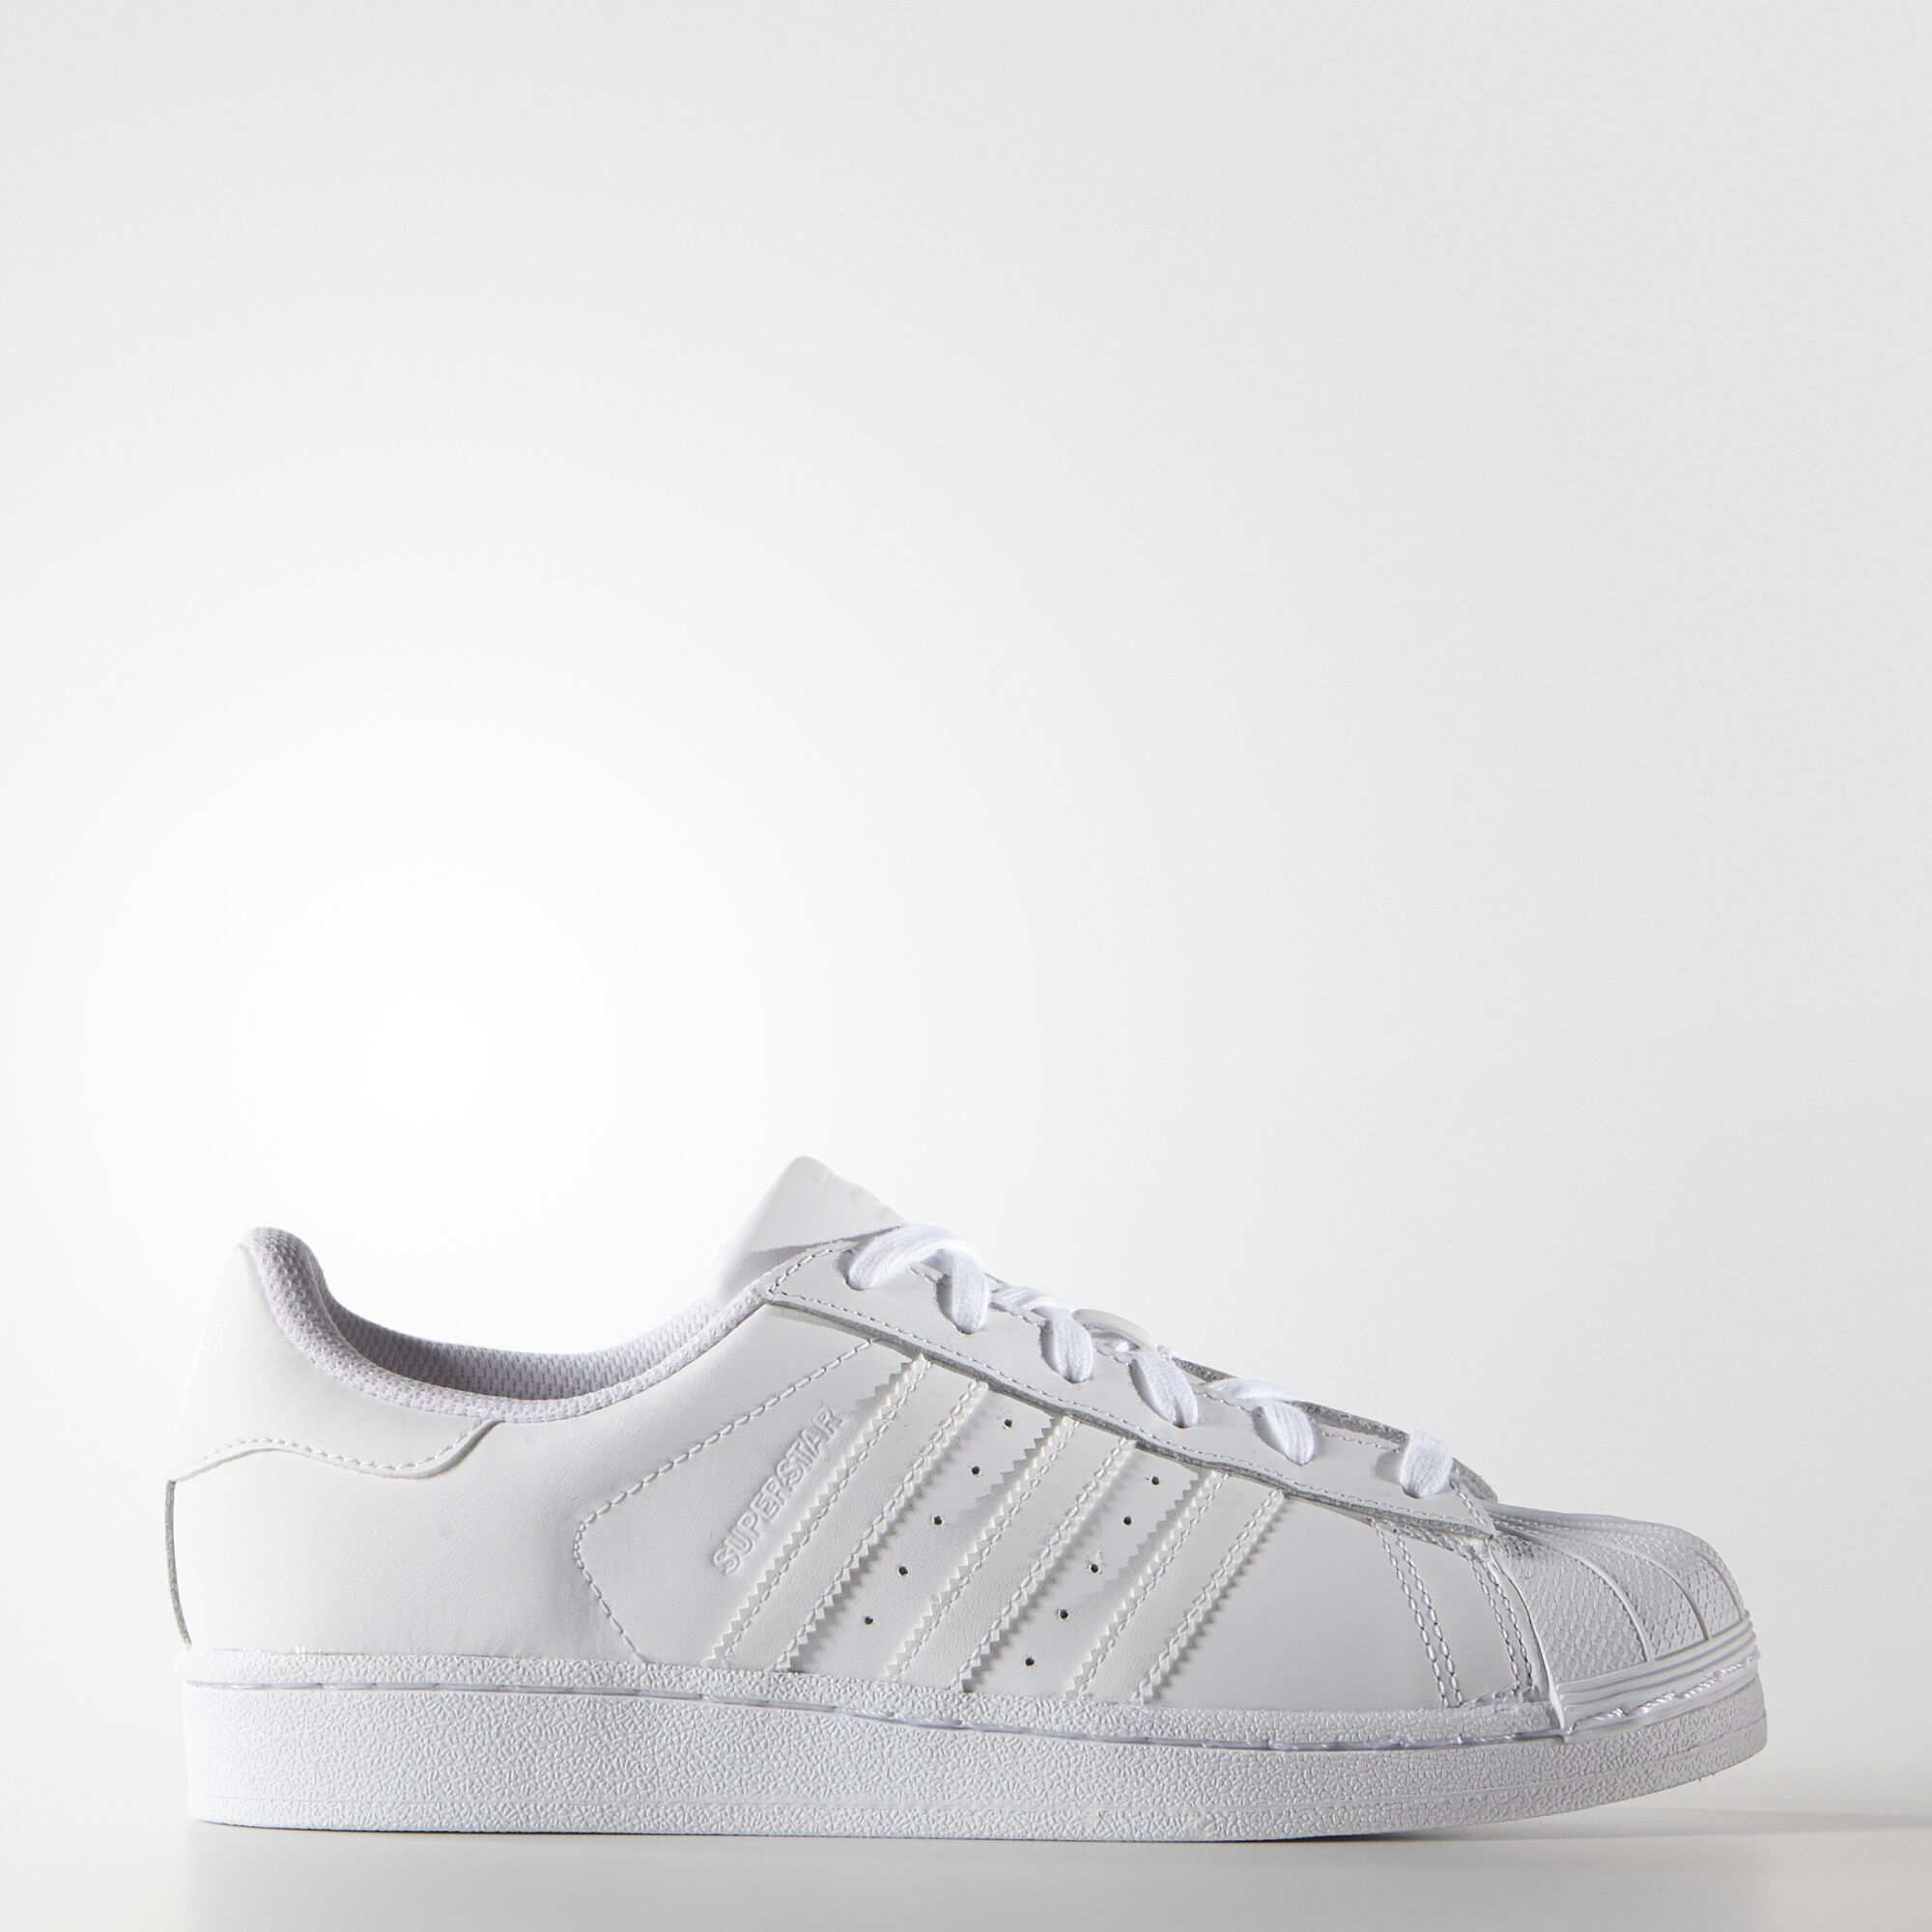 adidas superstar all white shoes